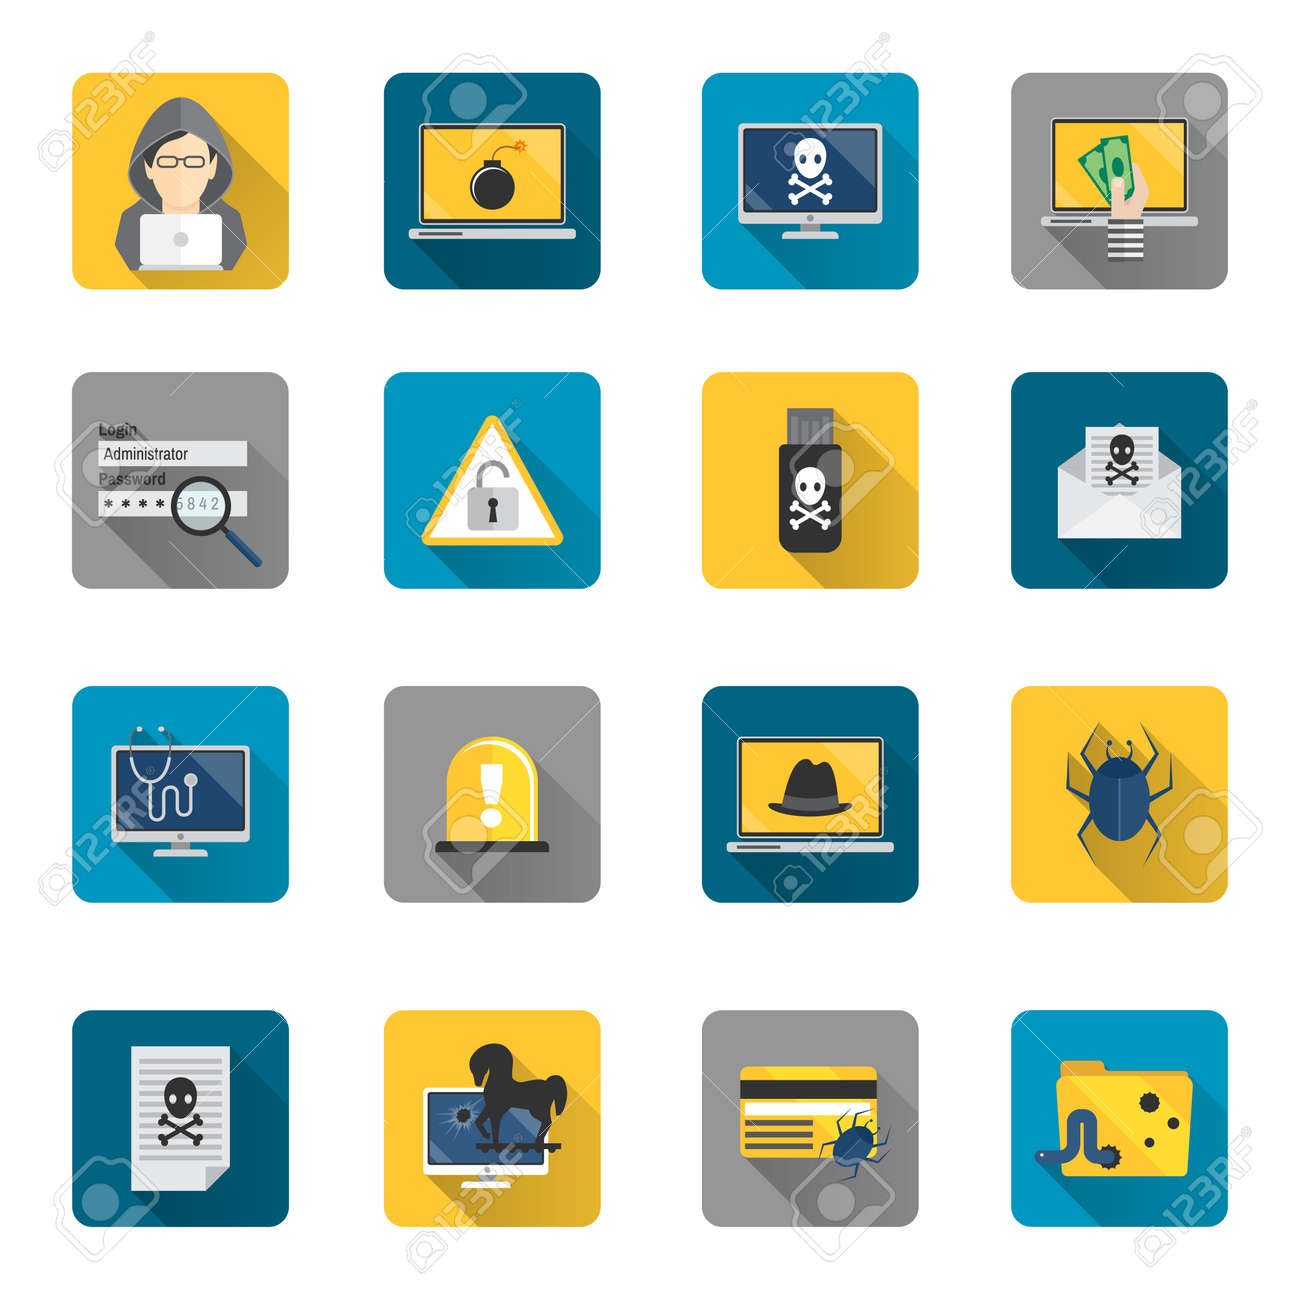 Hacker and computer safety and protection technology flat button icons set isolated vector illustration - 167123740